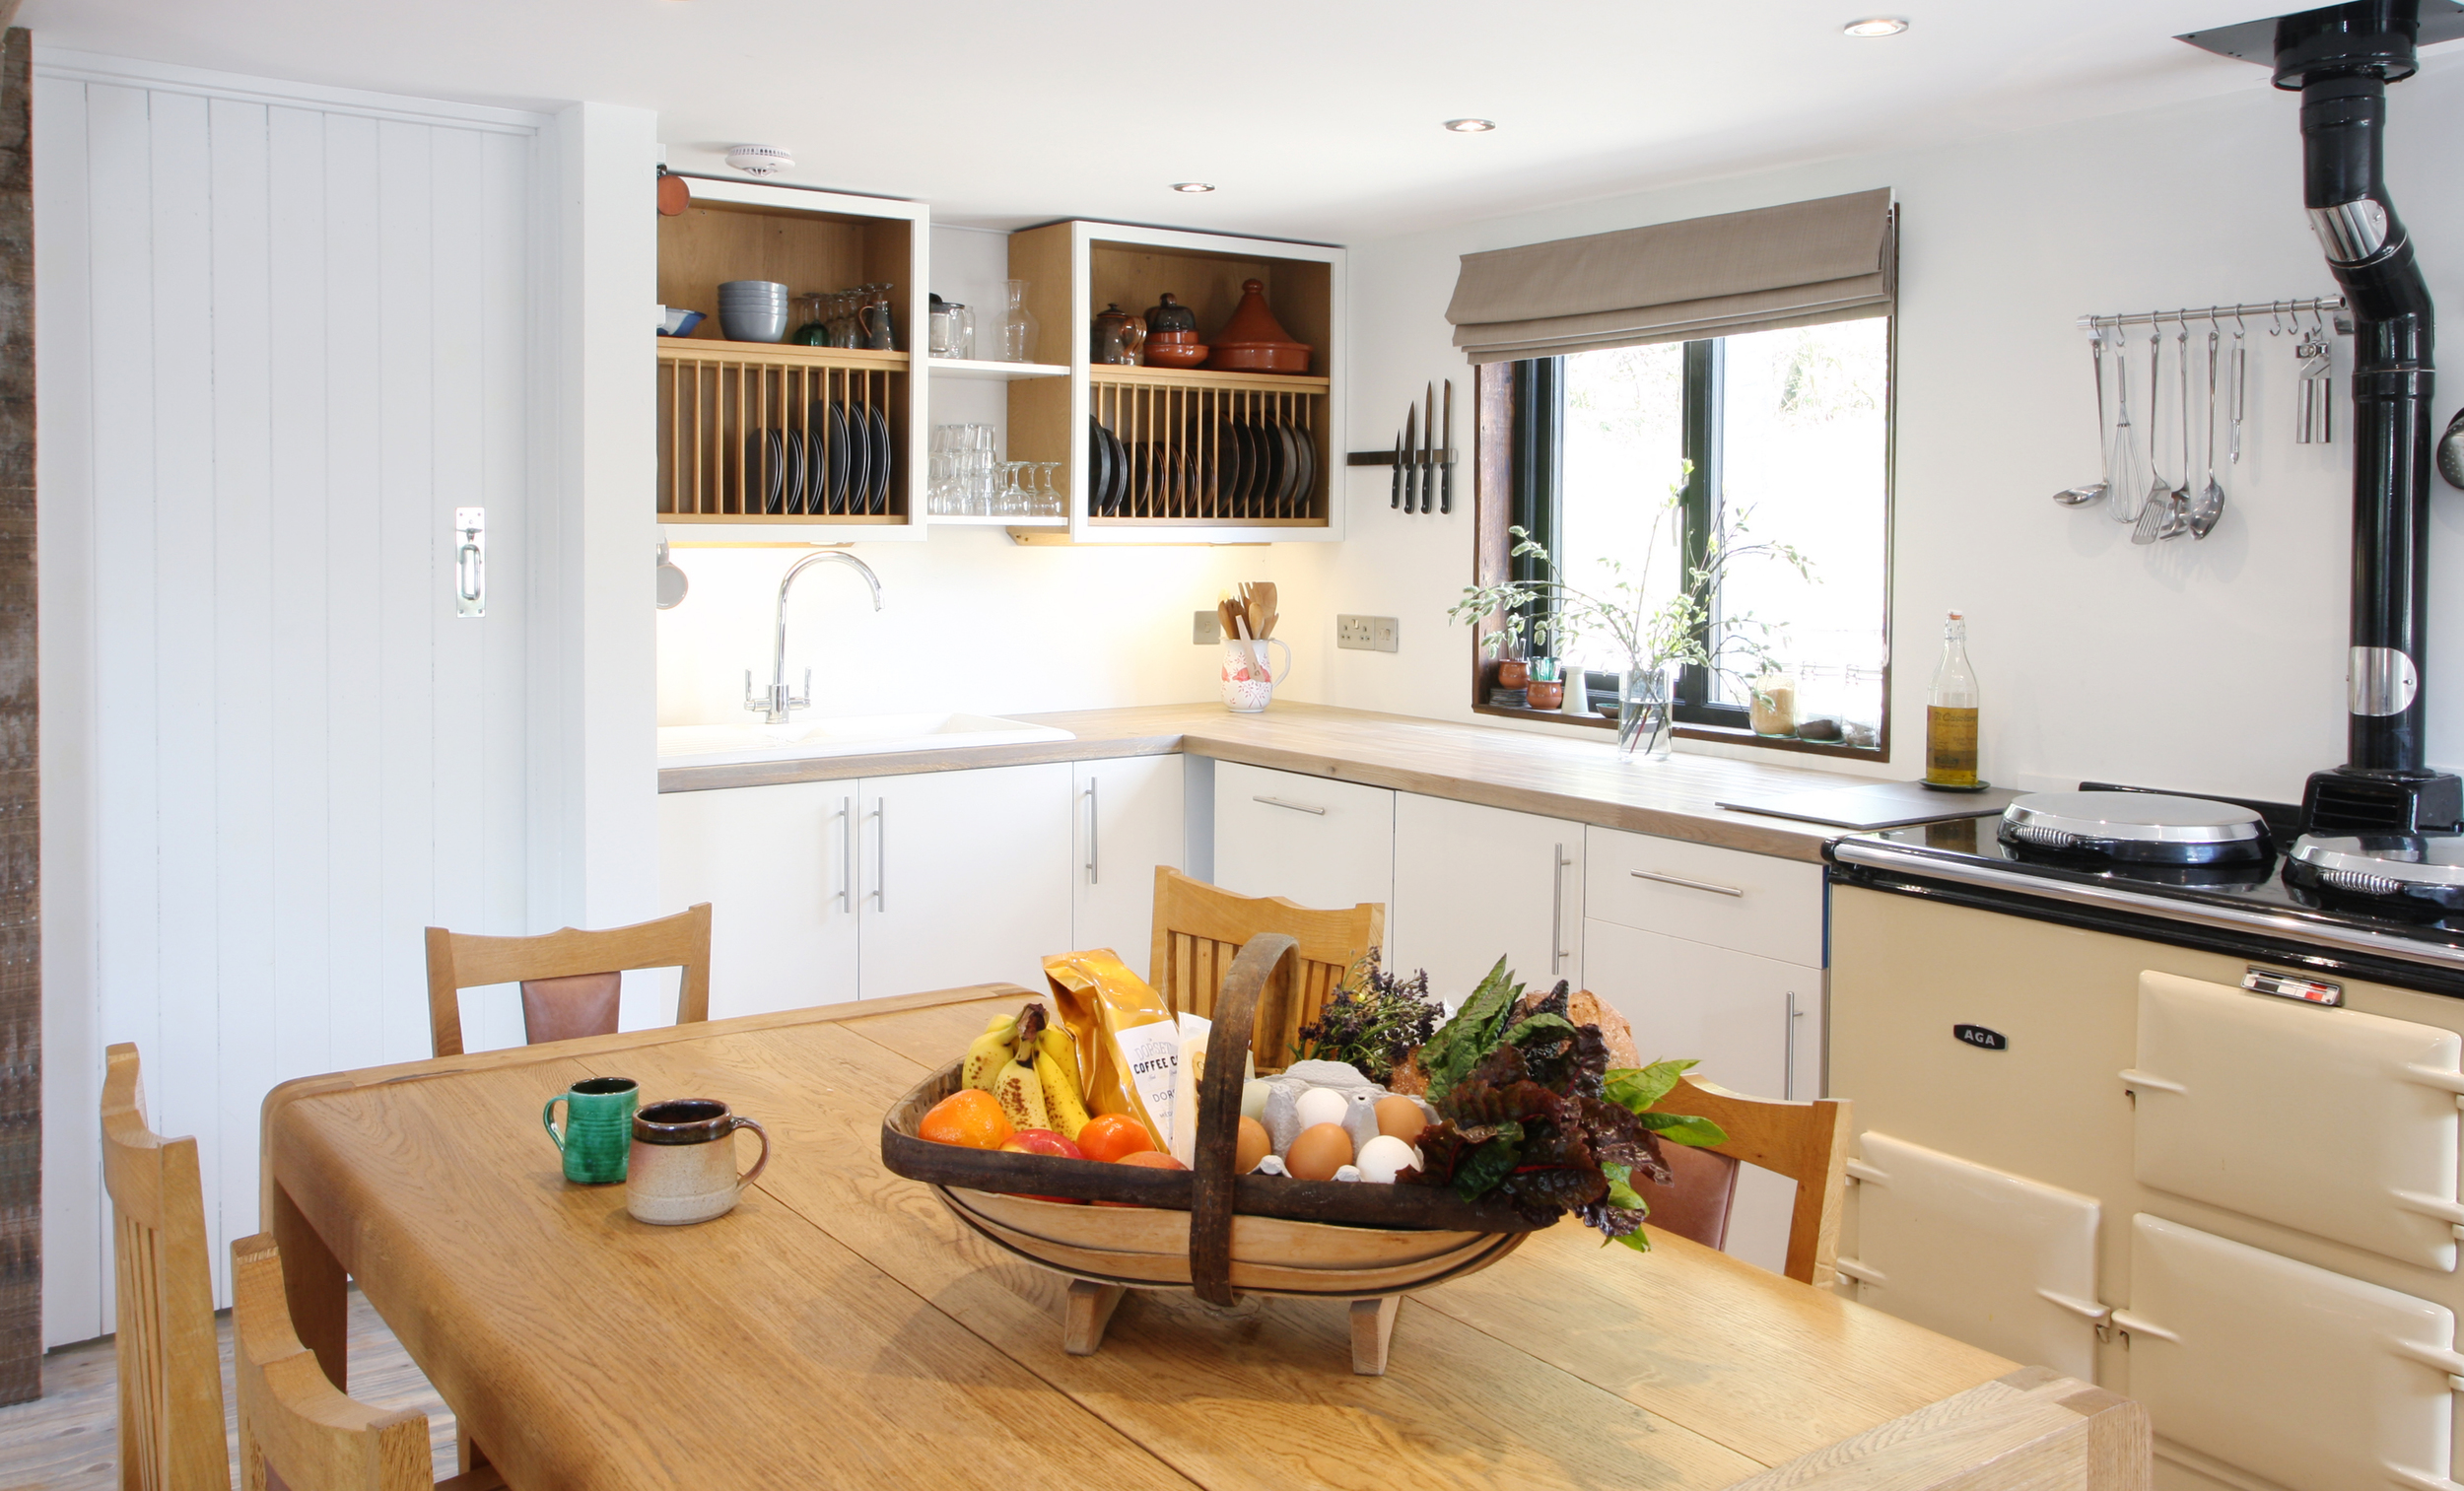 The Kitchen dining area with Aga and Radius Table by  Simon Pengelly  is a welcoming space to return to and enjoy creating fantastic meals from fresh local produce.